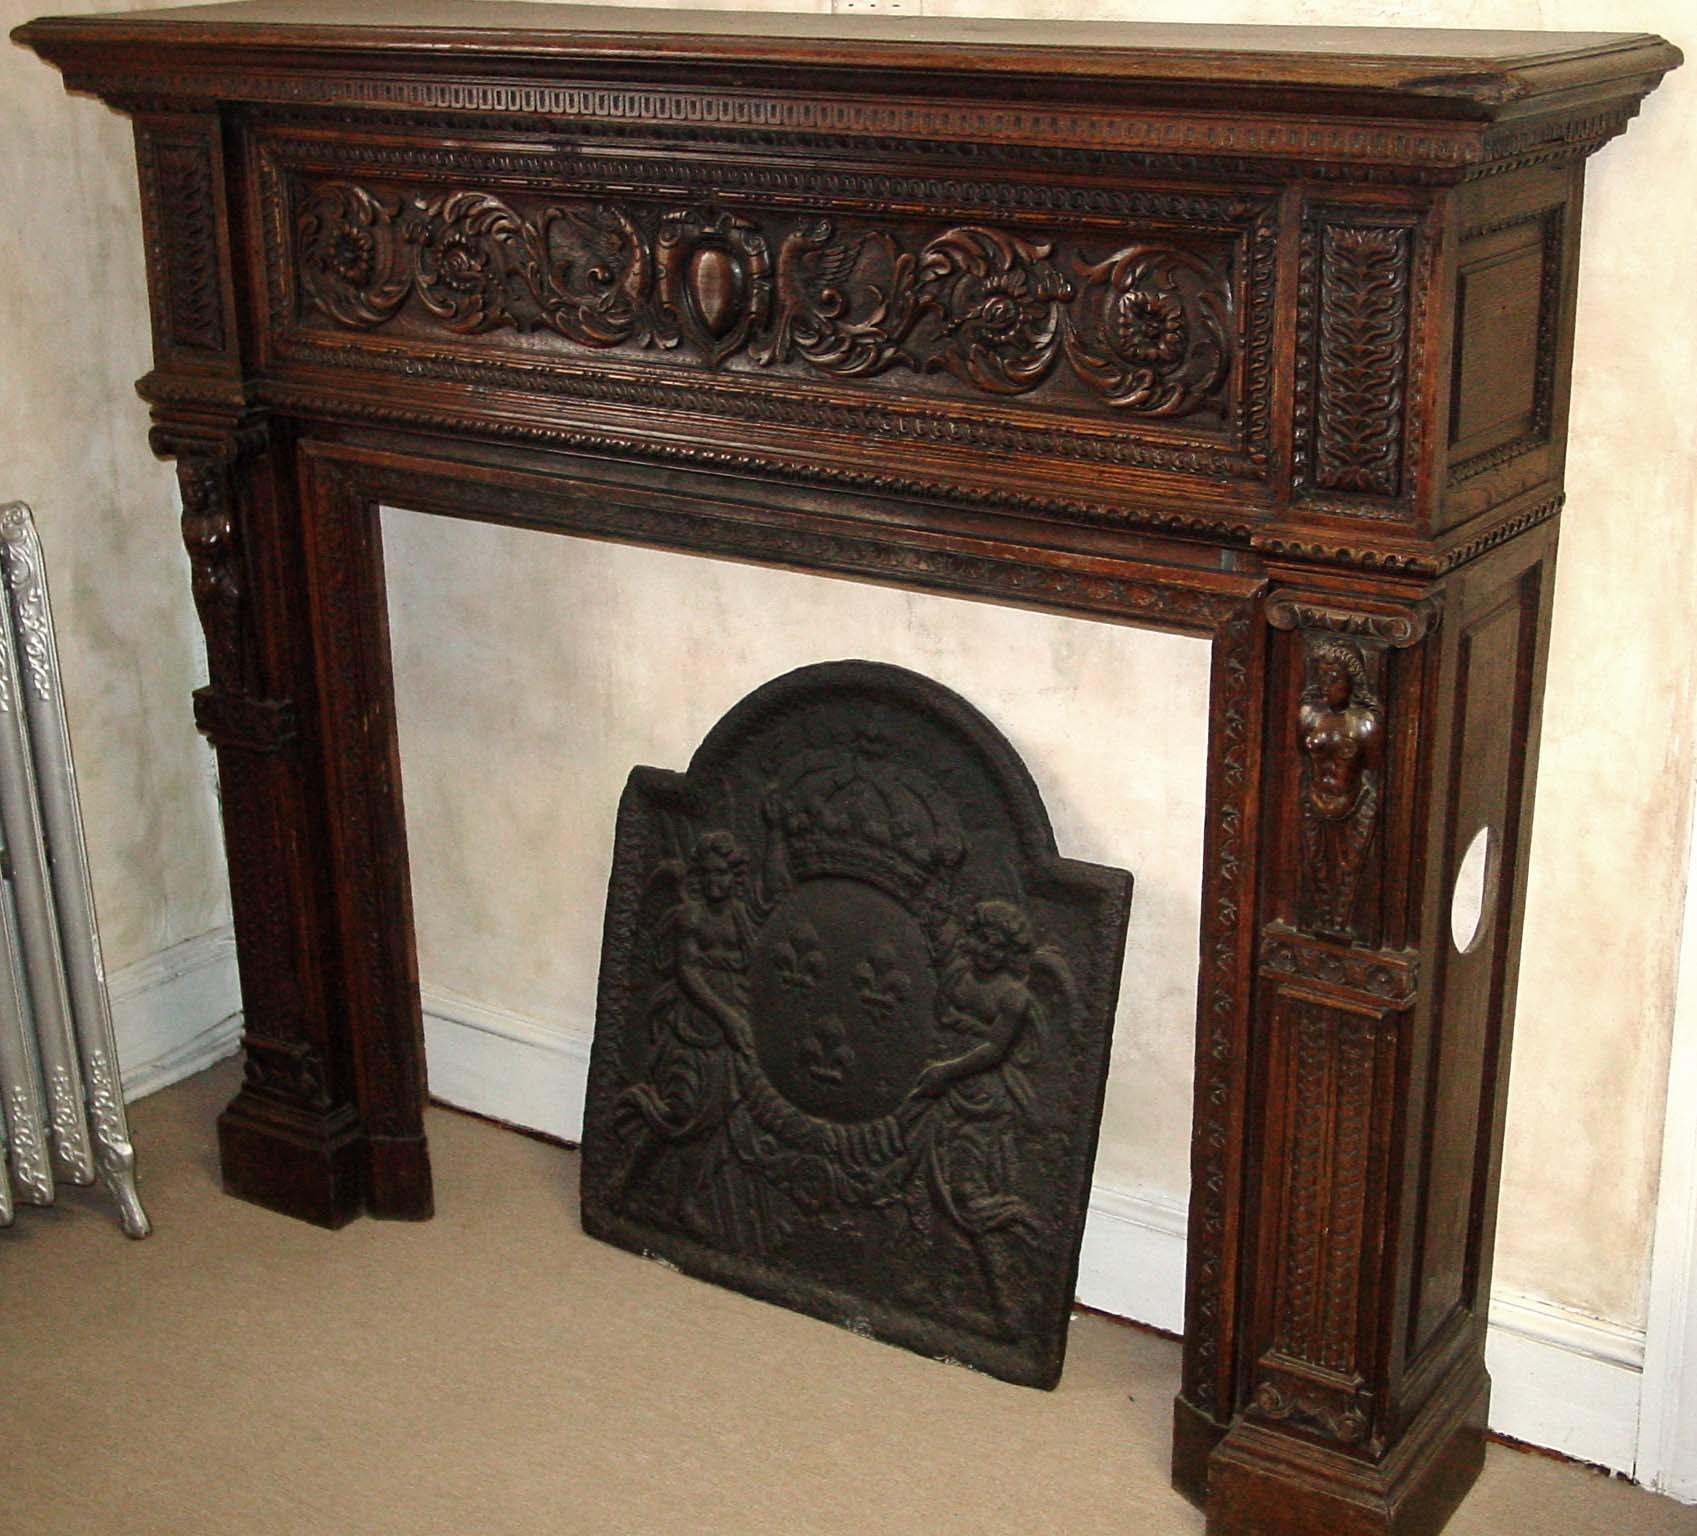 French, hand-carved wood fireplace mantel